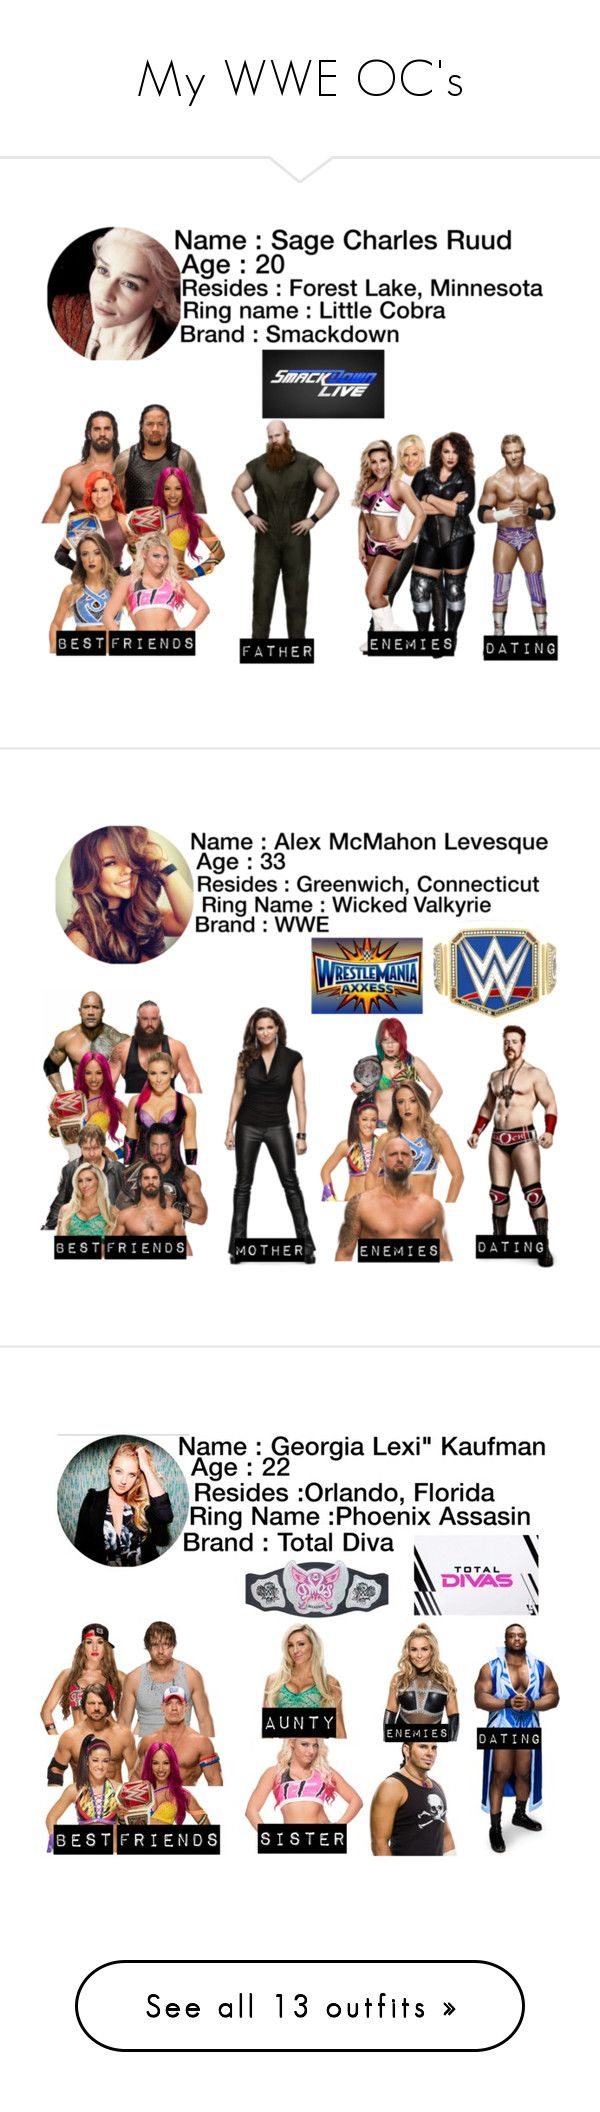 """My WWE OC's"" by moon-and-back-babe123 ❤ liked on Polyvore featuring Ryder, WWE, Braun, Karl Lagerfeld, GET LOST, CENA, Episode, Champion, Kane and Disney"